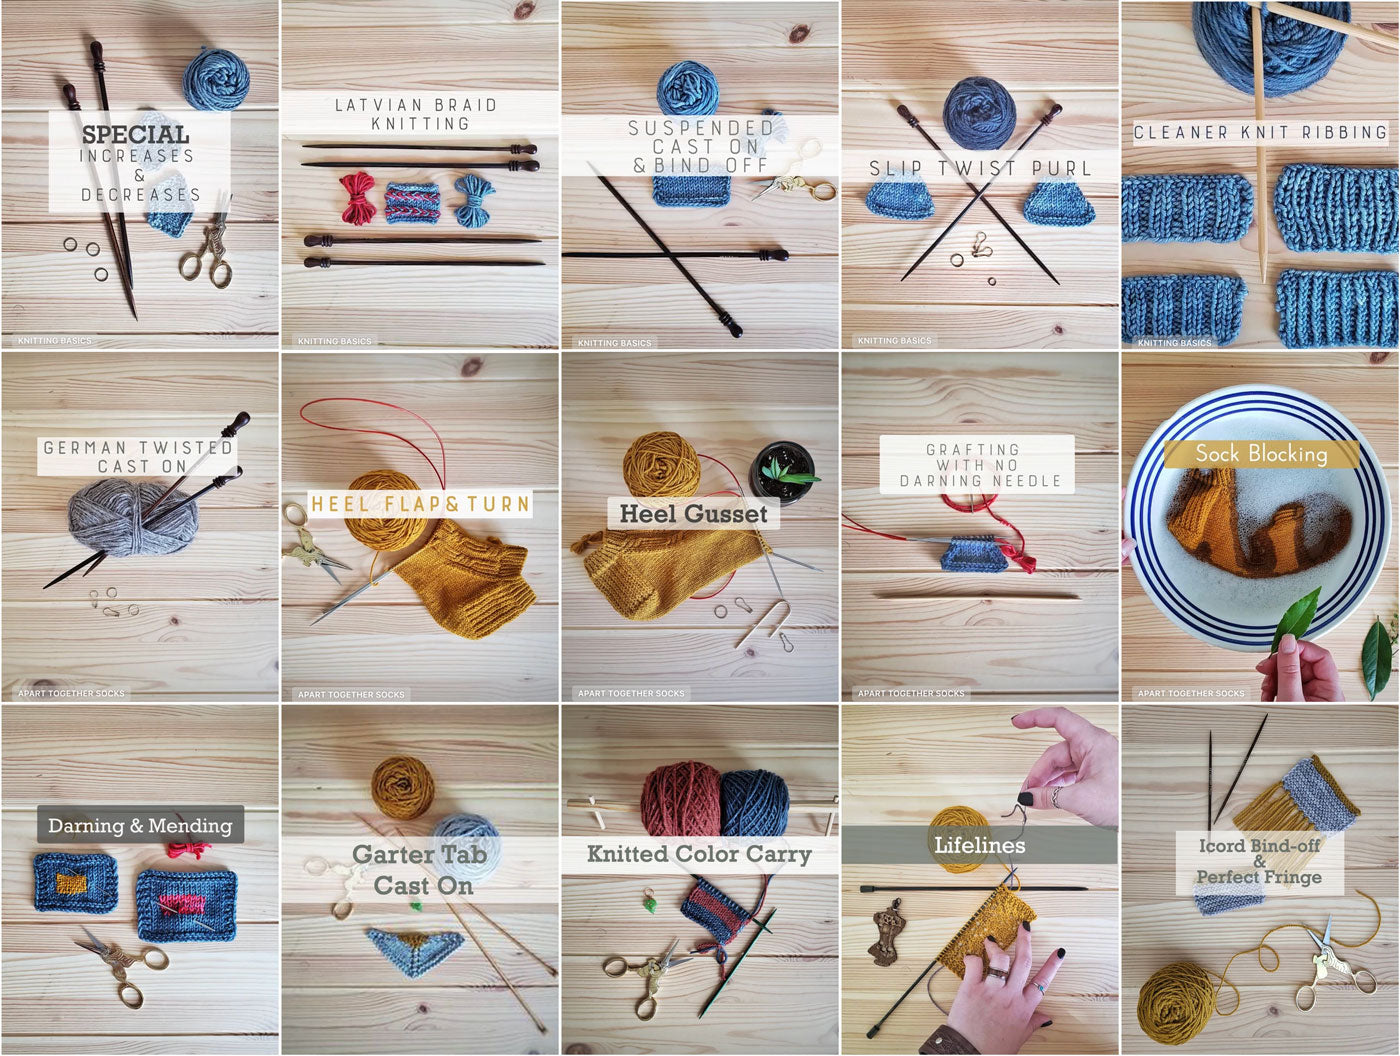 A tiled image of screenshots from 15 different knitting tutorials.